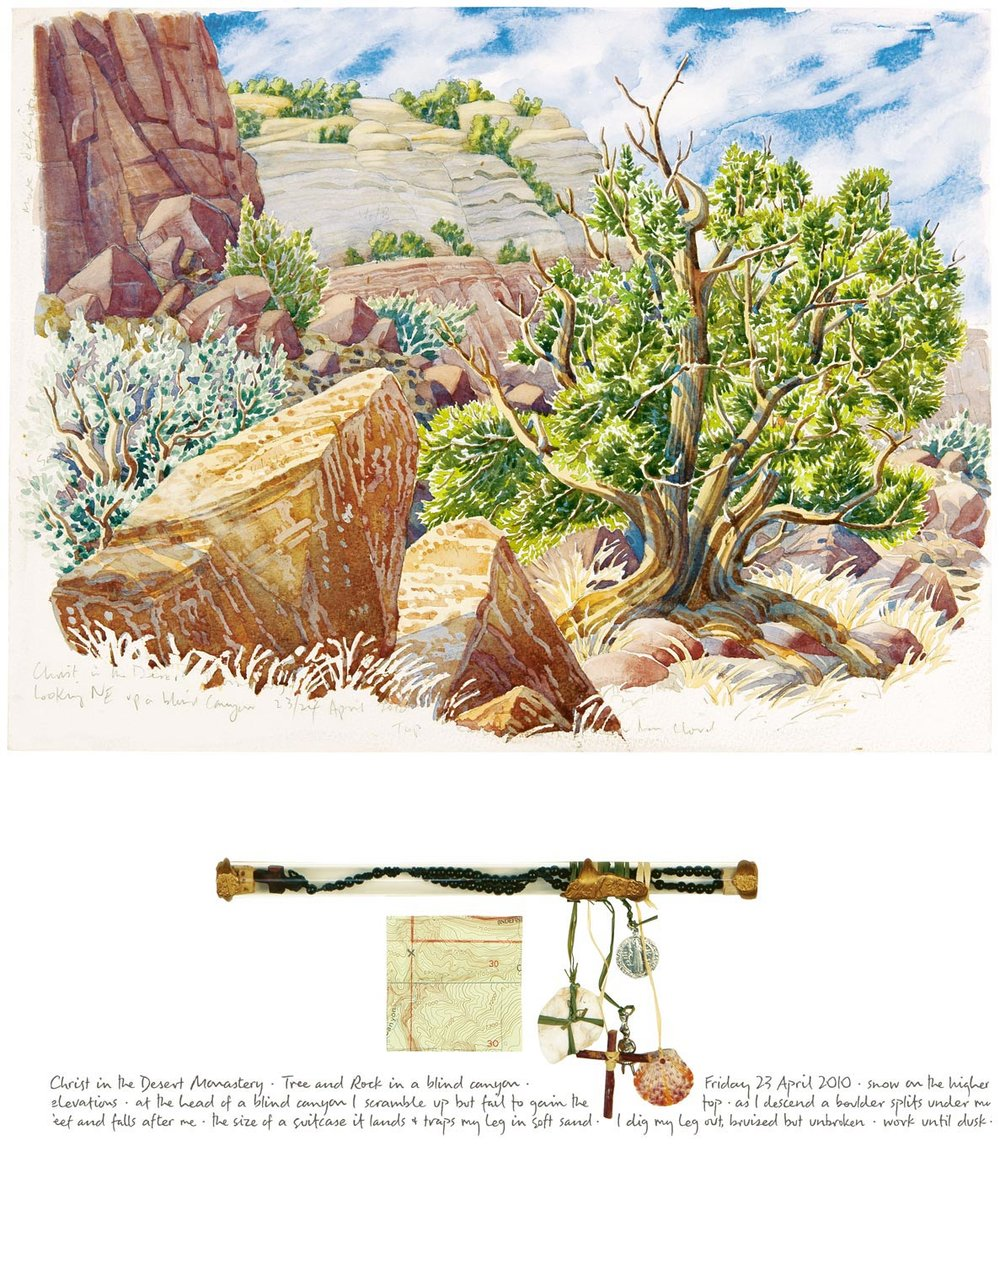 Tony Foster ,  Christ in the Desert Monastery, Tree and Rock in a Blind Canyon , 2010